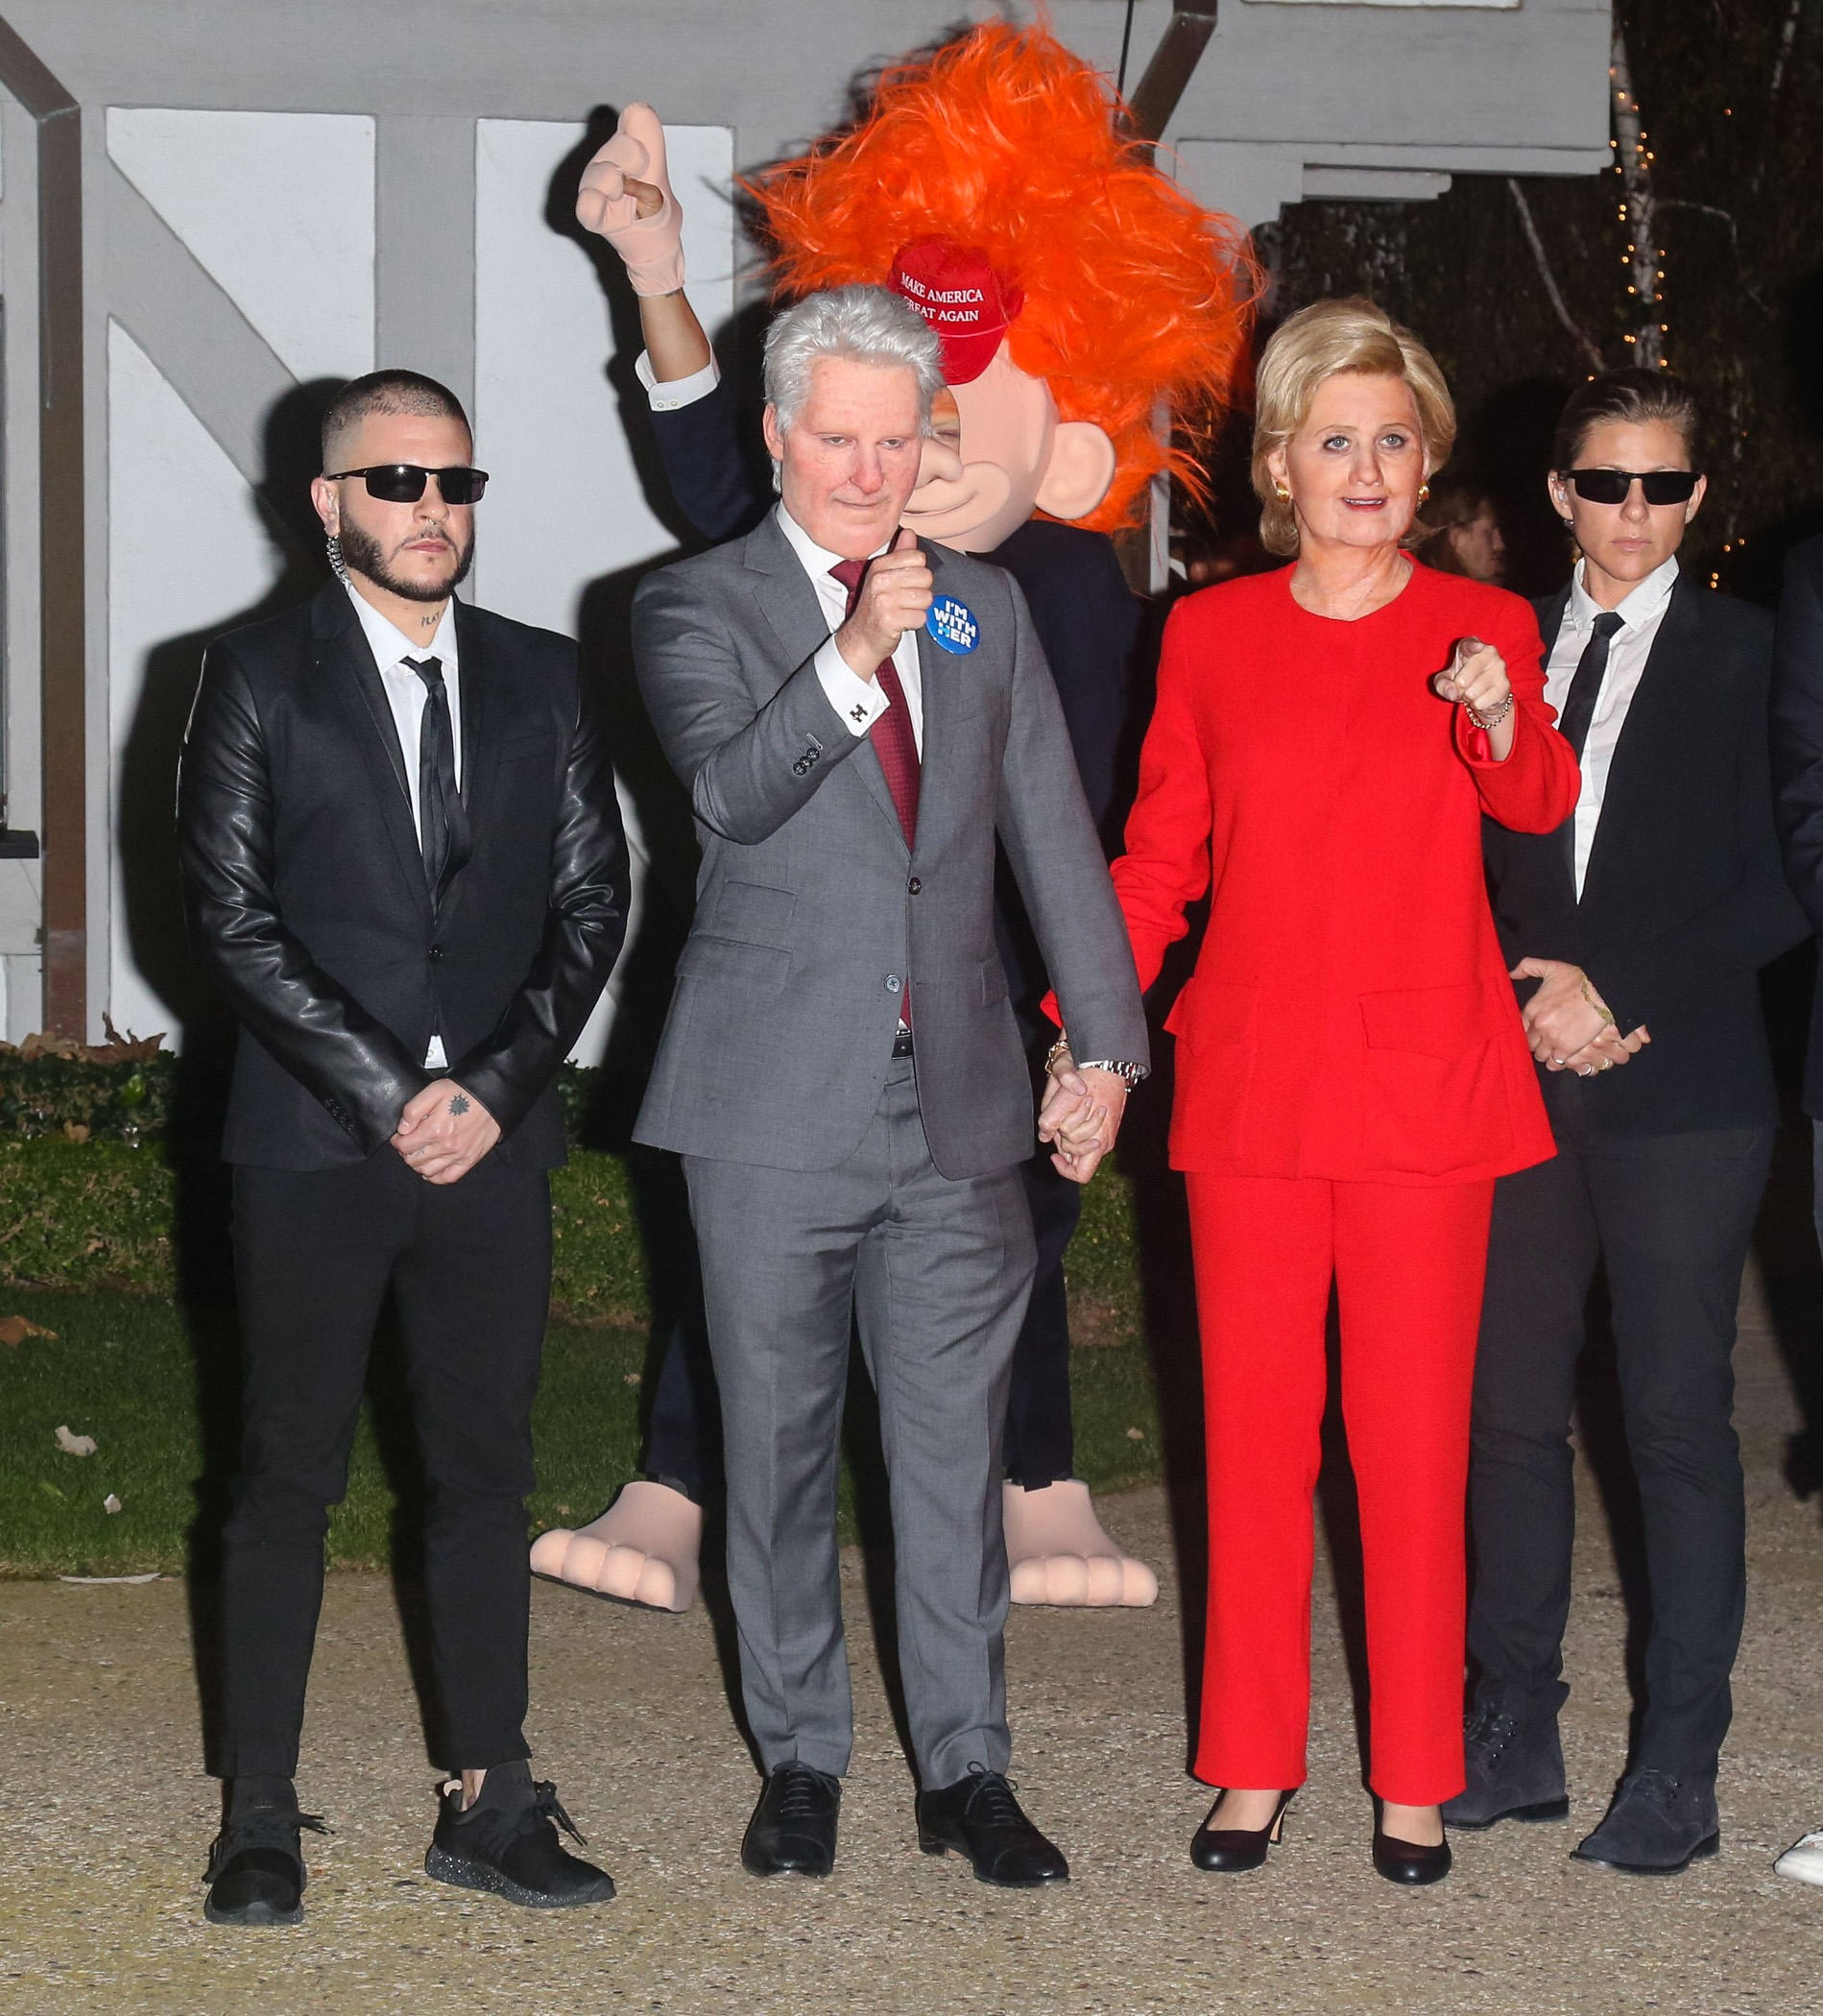 Katy Perry e amigo vestidos de Bill e Hilary Clinton no Halloween de 2016 (Foto: Getty Images)